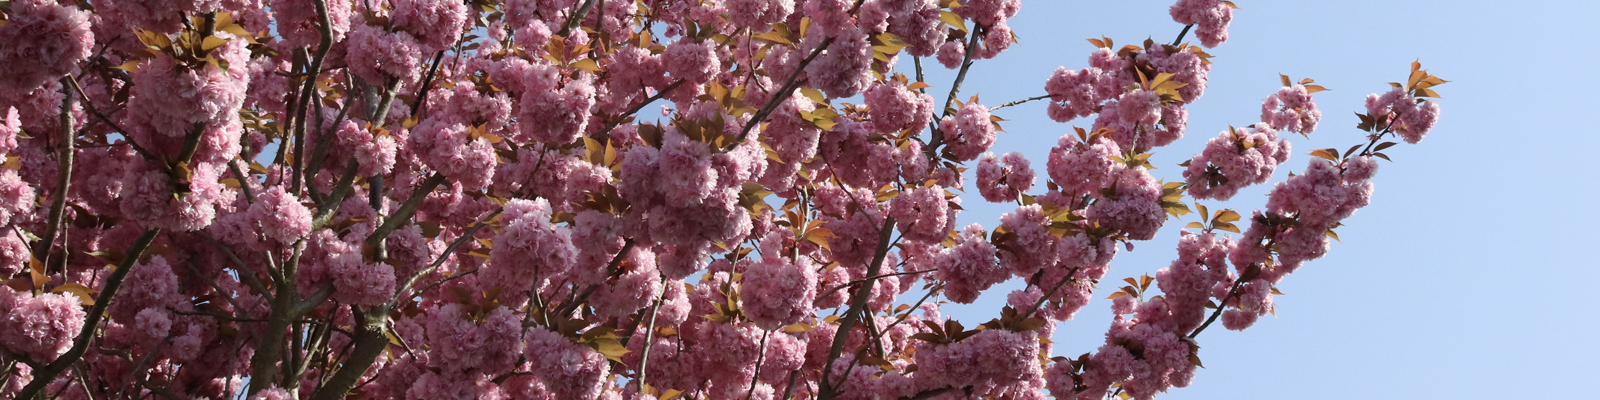 Tollesbury Parish Council, Clubs And Associations, Tree In Blossom